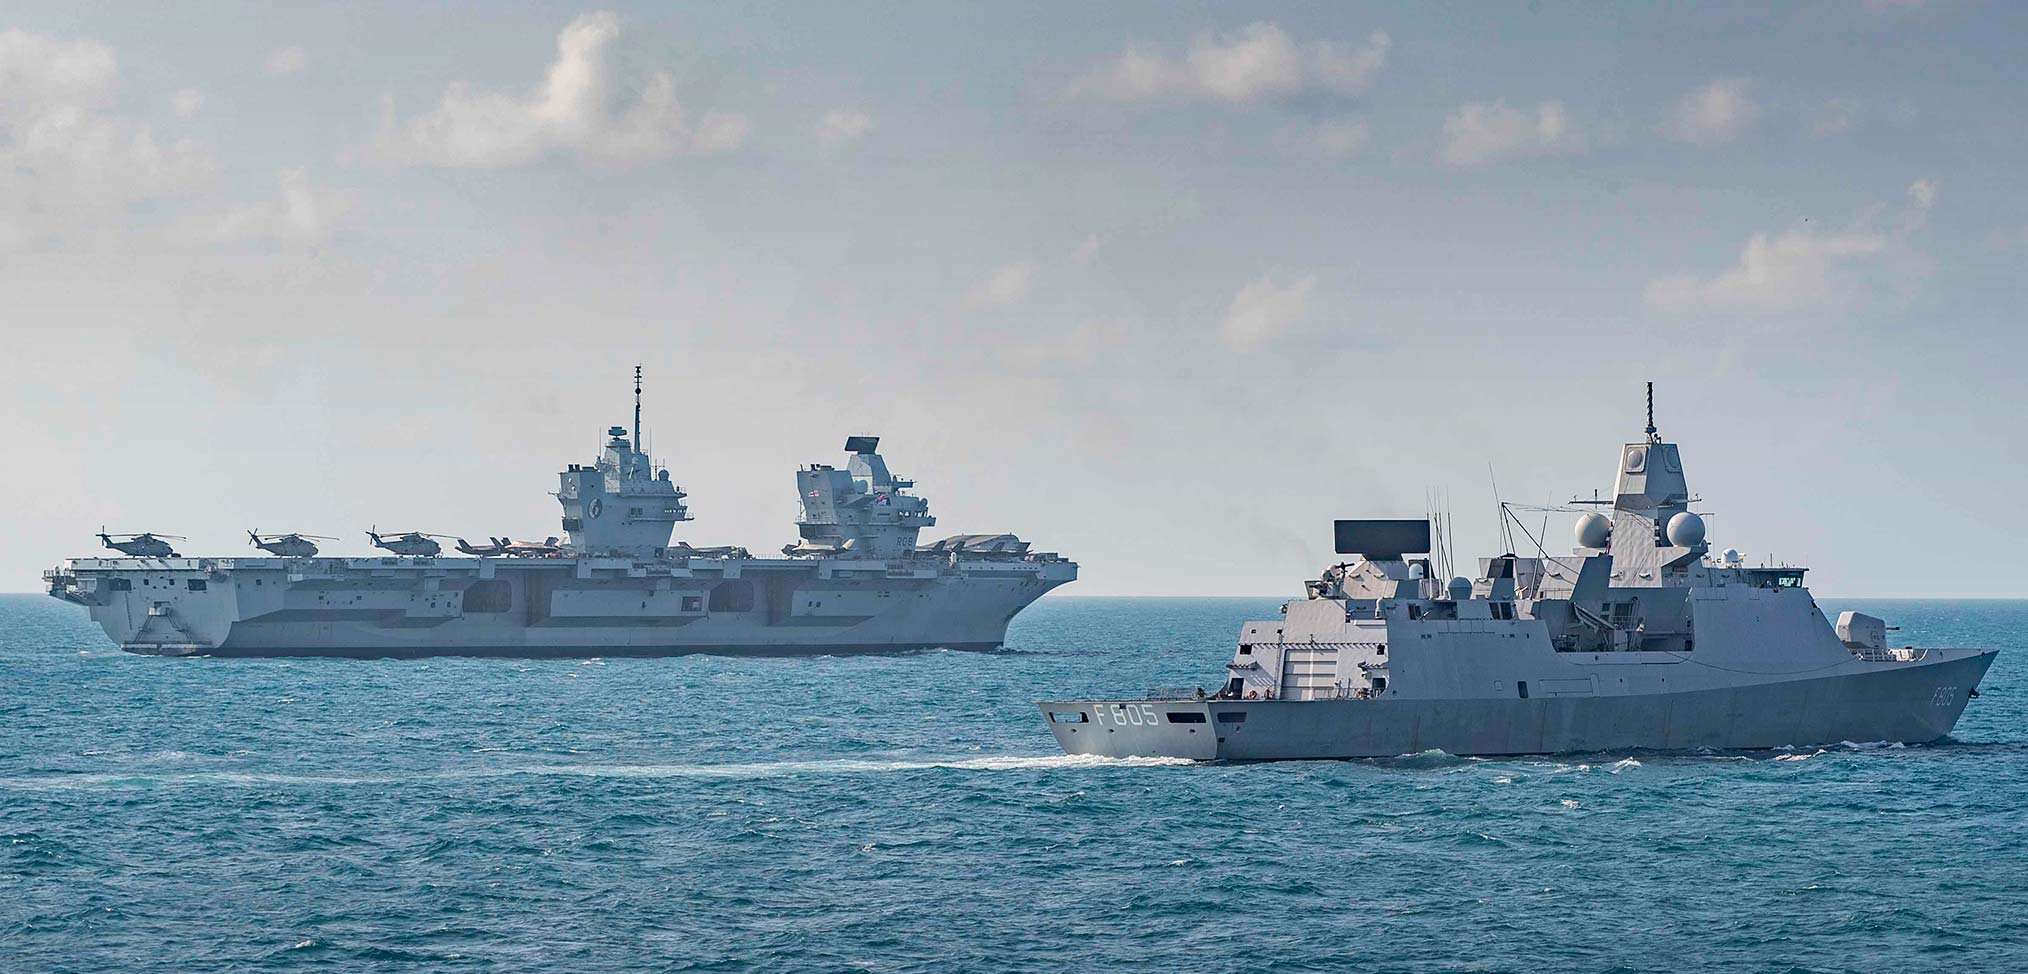 """Carrier Strike Group interactions with Chinese vessels described as """"safe and professional"""""""